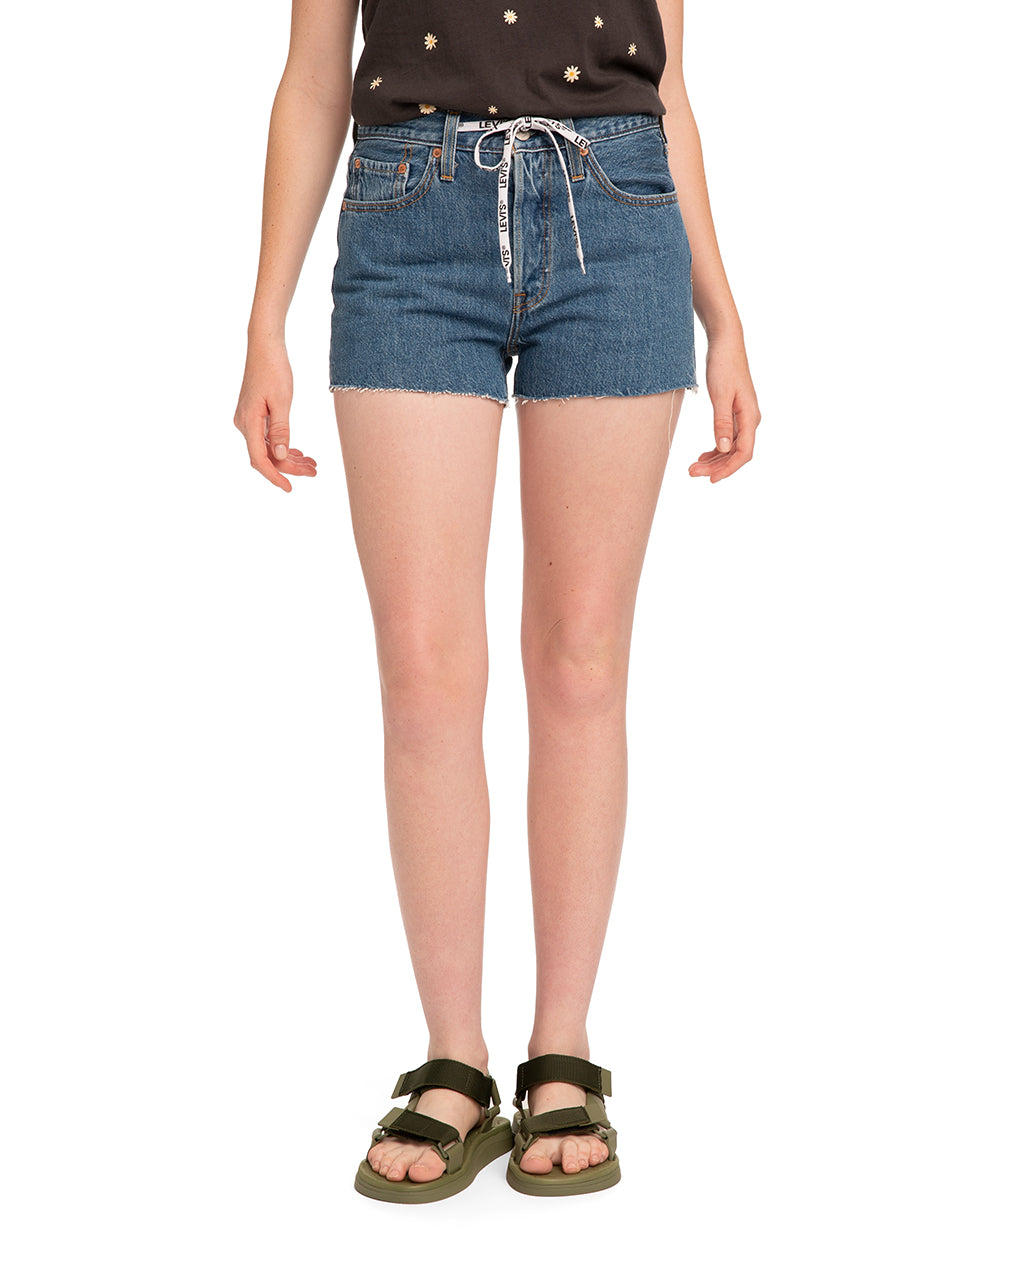 4c3651e3c1 501 High Rise Short - Draw-Back by levi's - shorts - ban.do